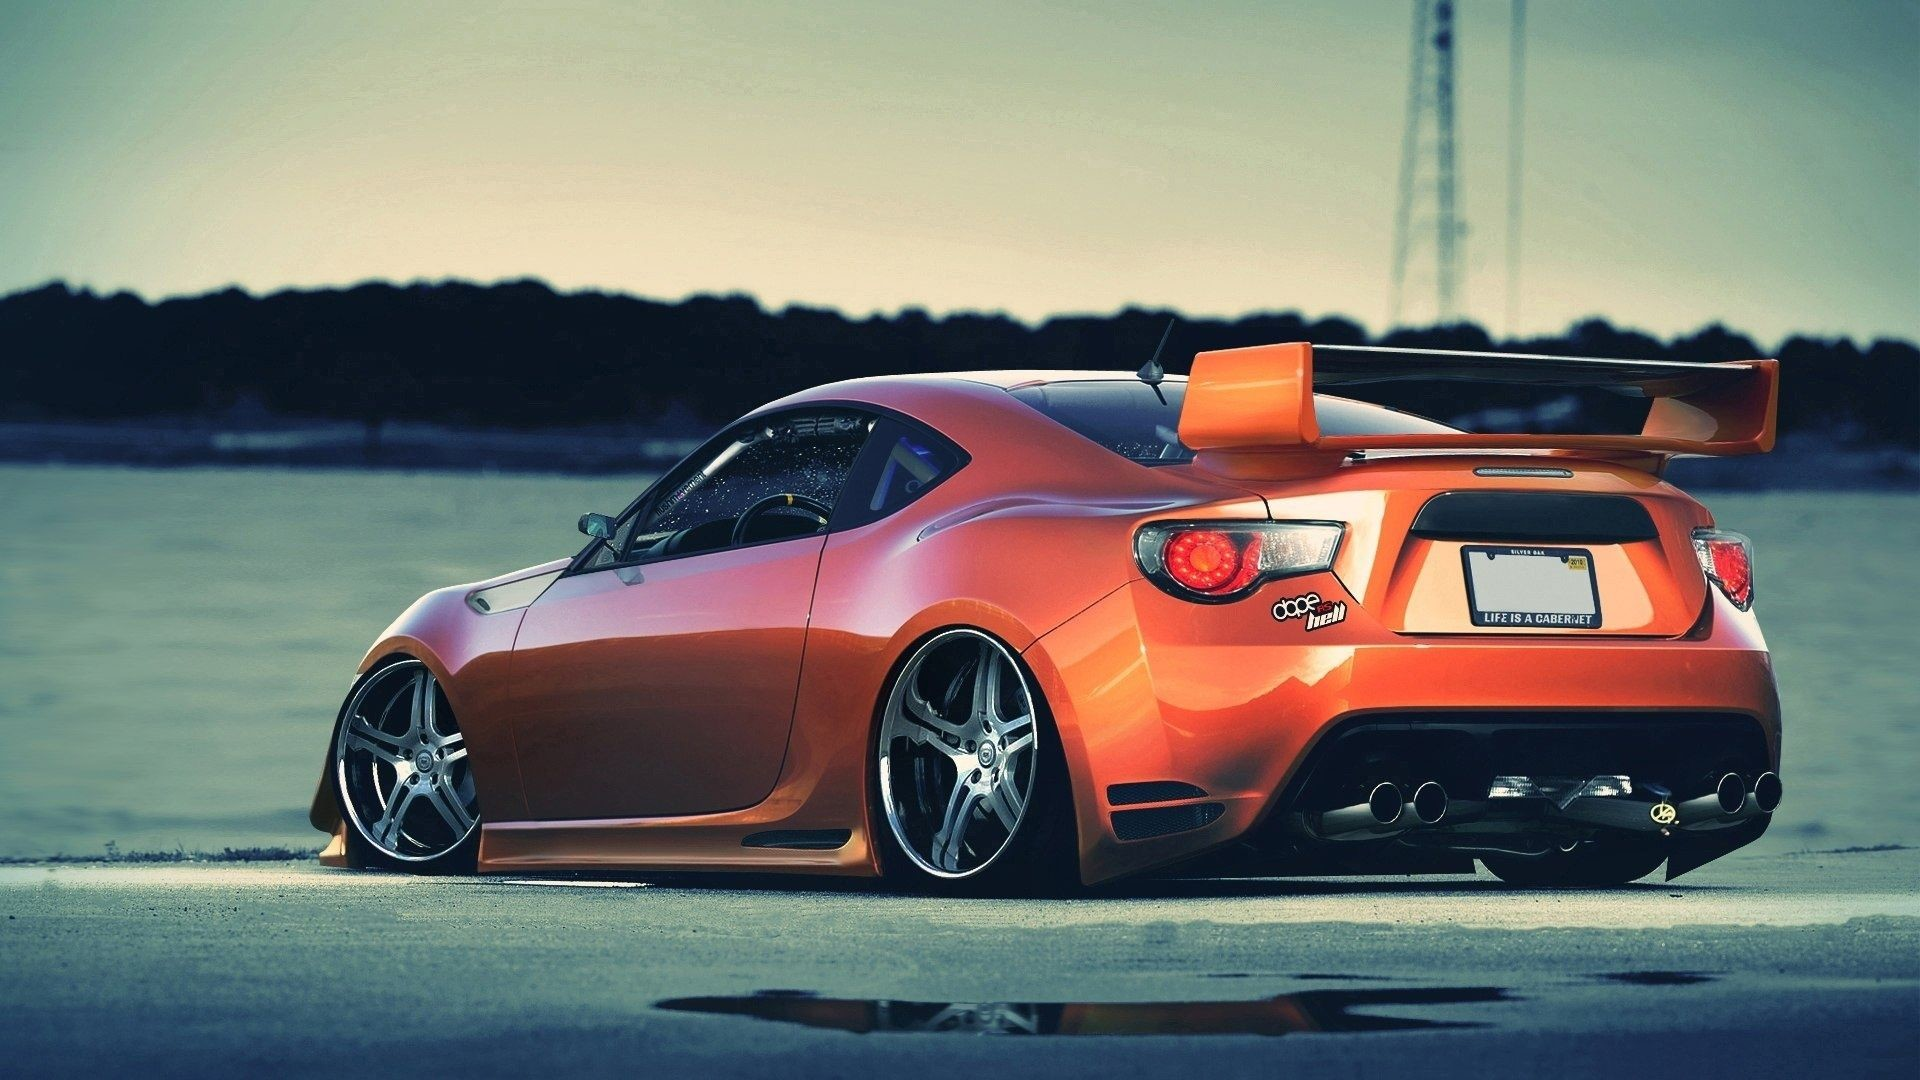 1920x1080 Tuned Cars Wallpapers Hd 36 With